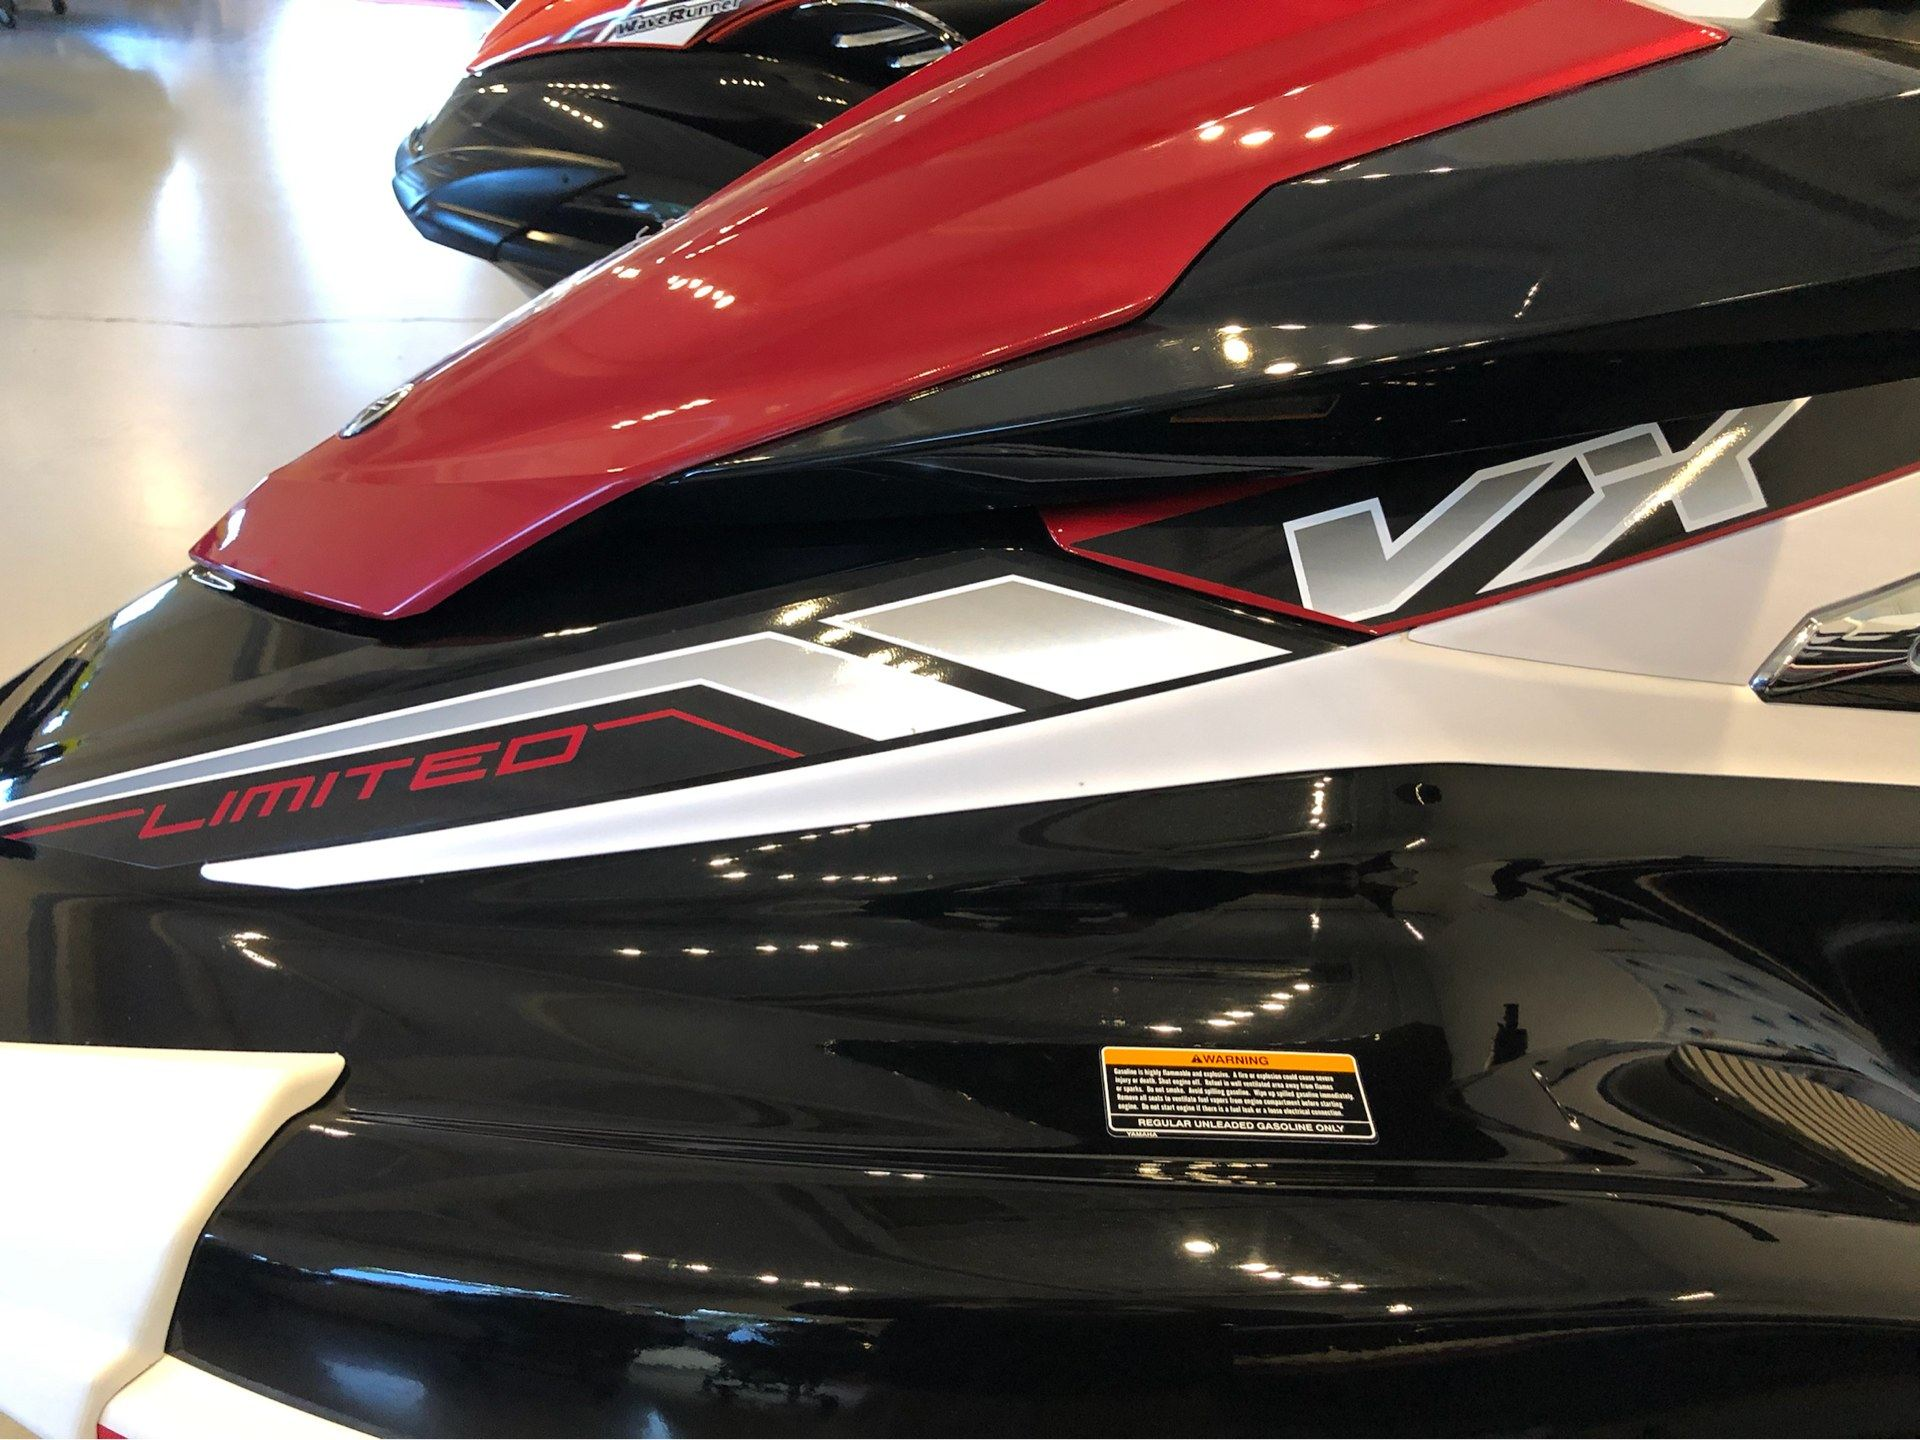 2018 Yamaha VX Limited in Mooresville, North Carolina - Photo 4